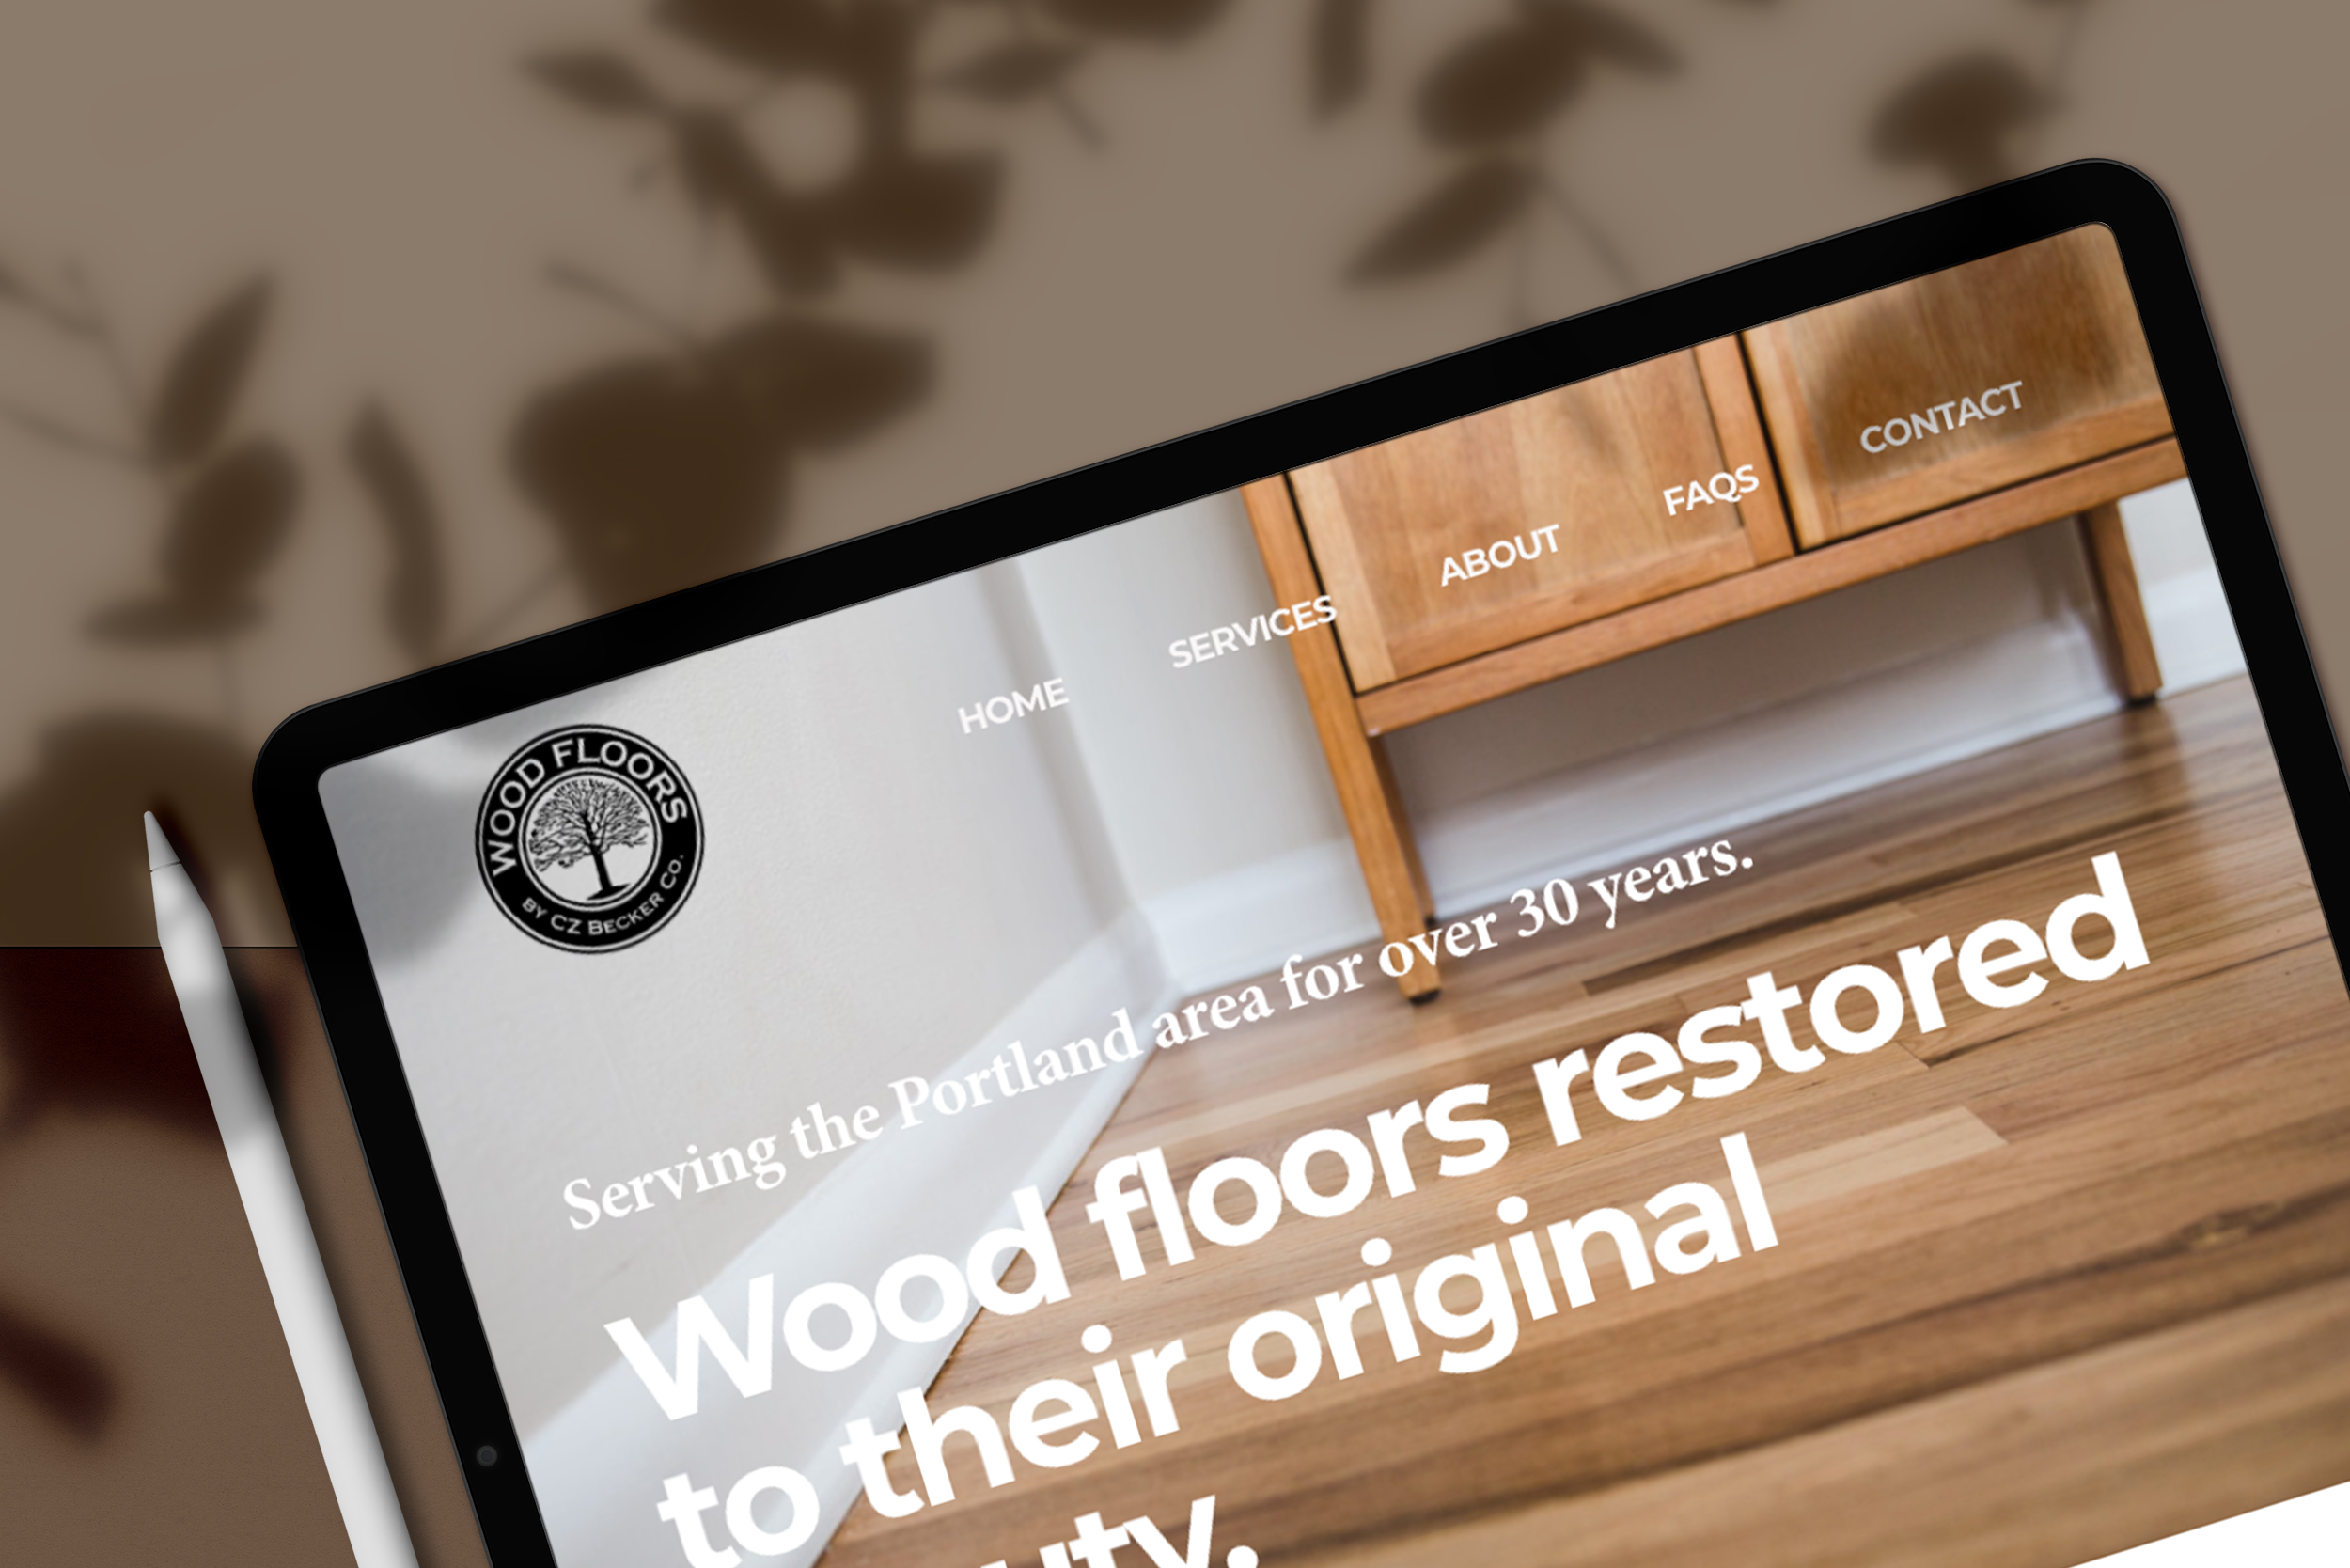 CZ Becker Wood Floors website design on tablet